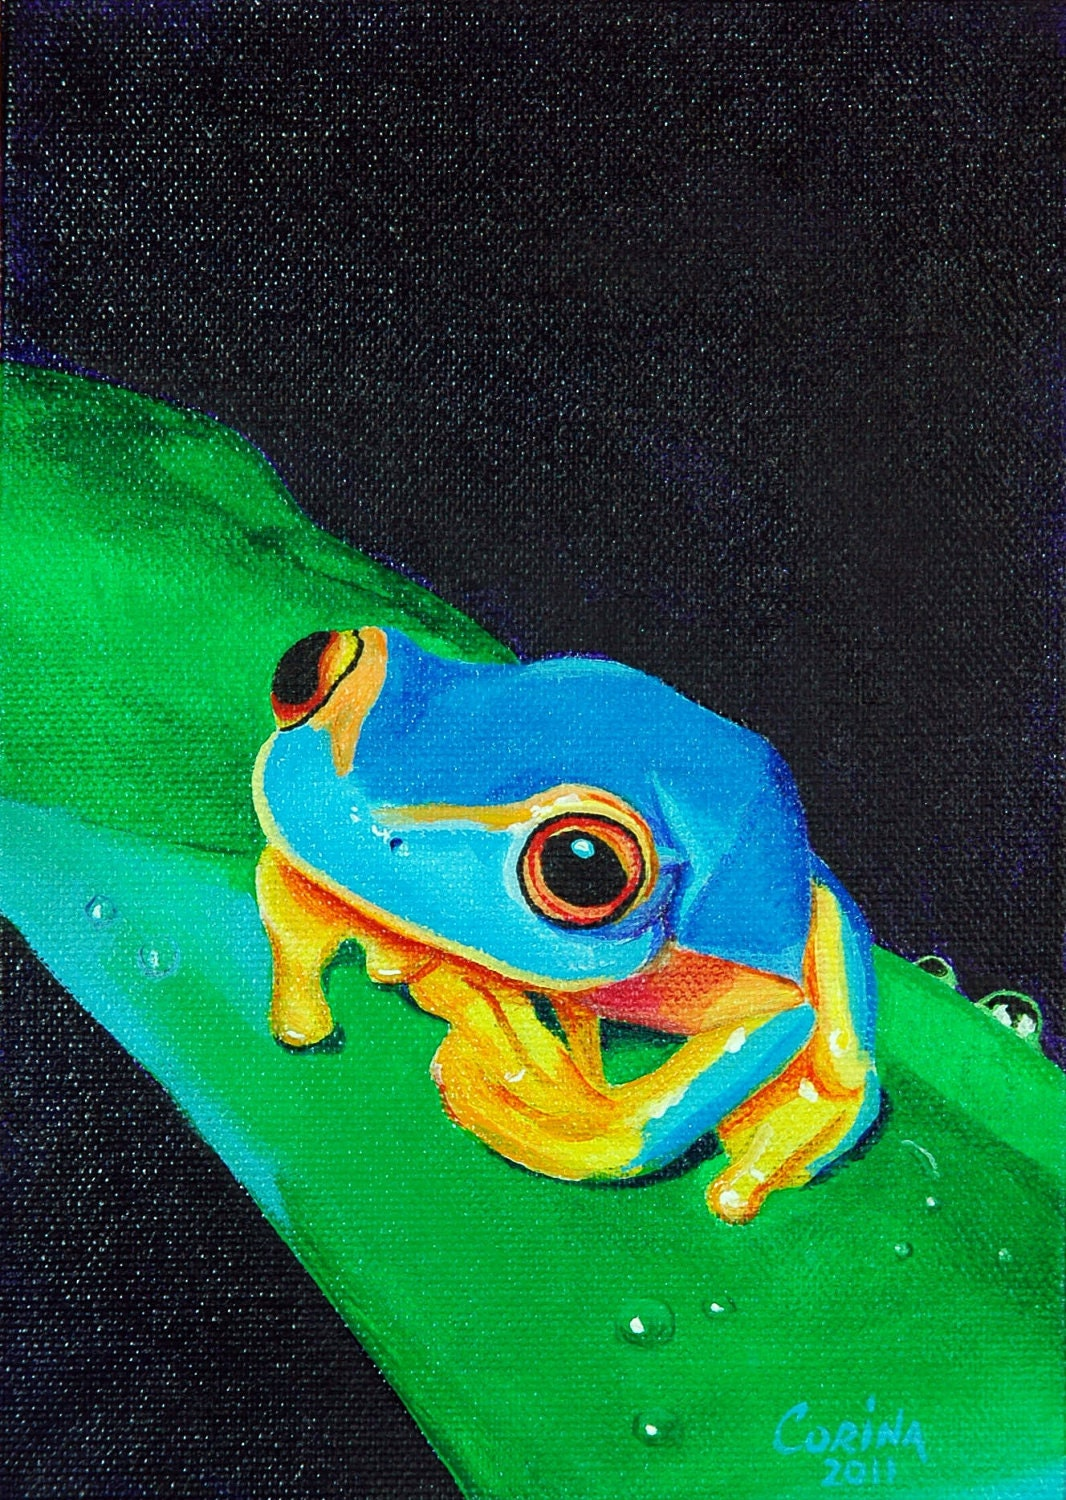 Colorful frog painting